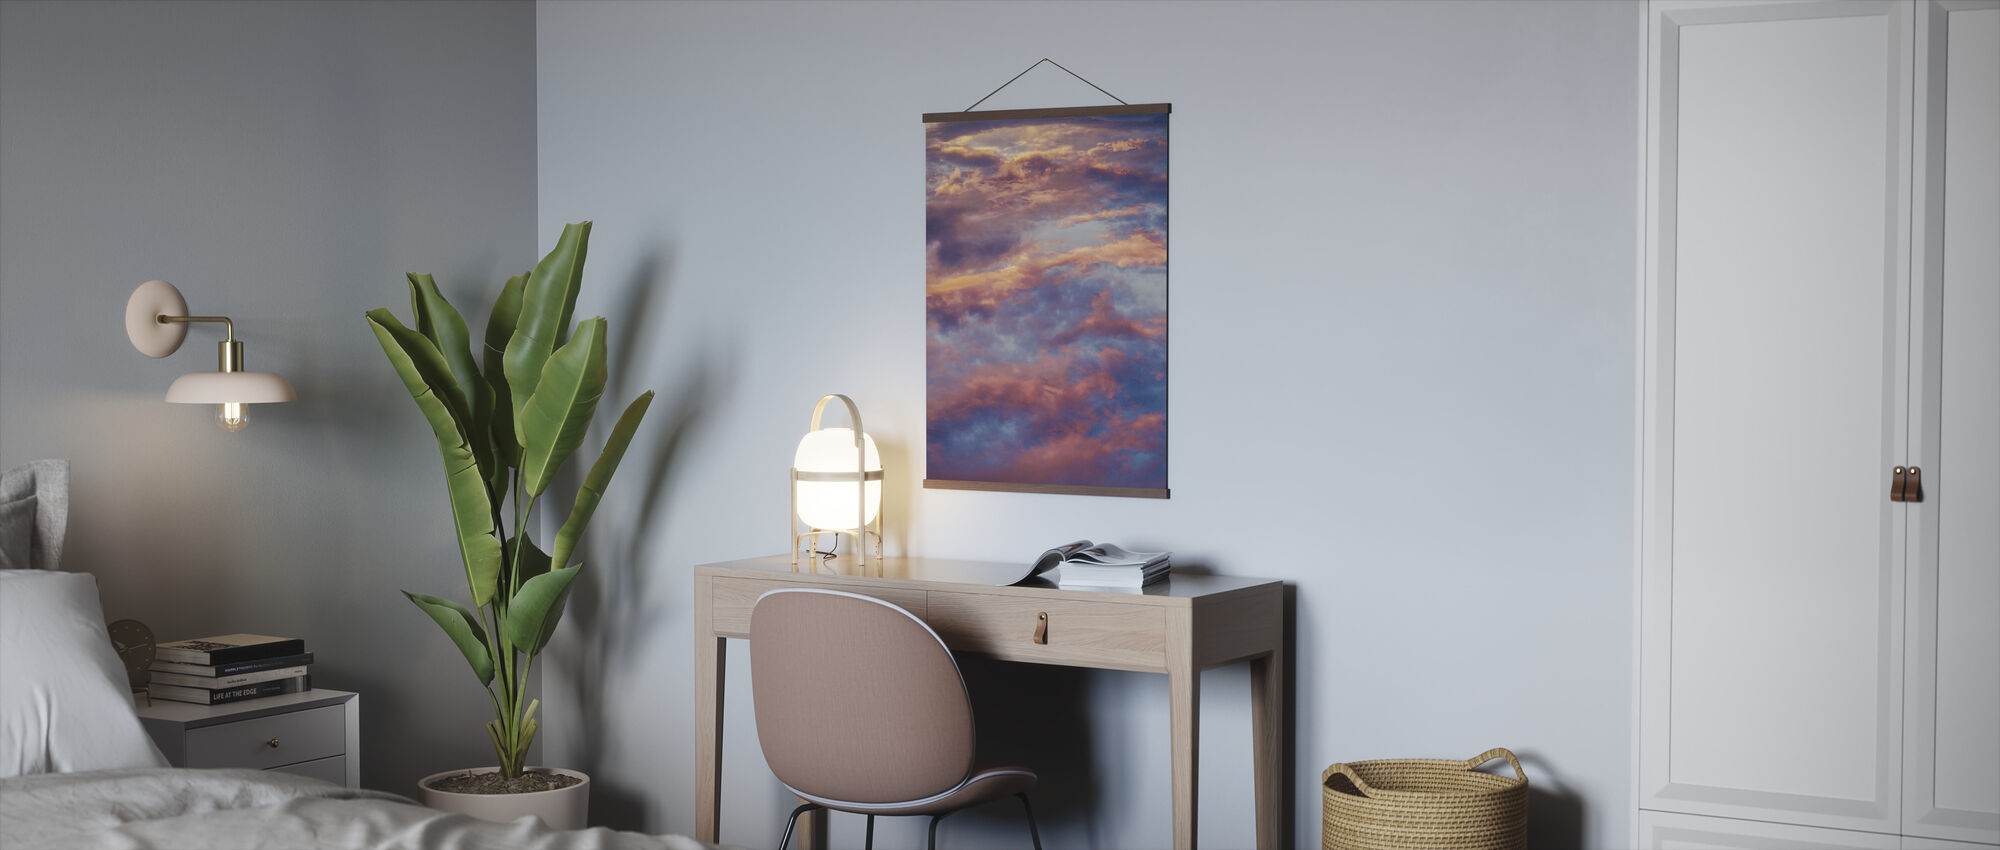 Angelic Clouds - Poster - Office